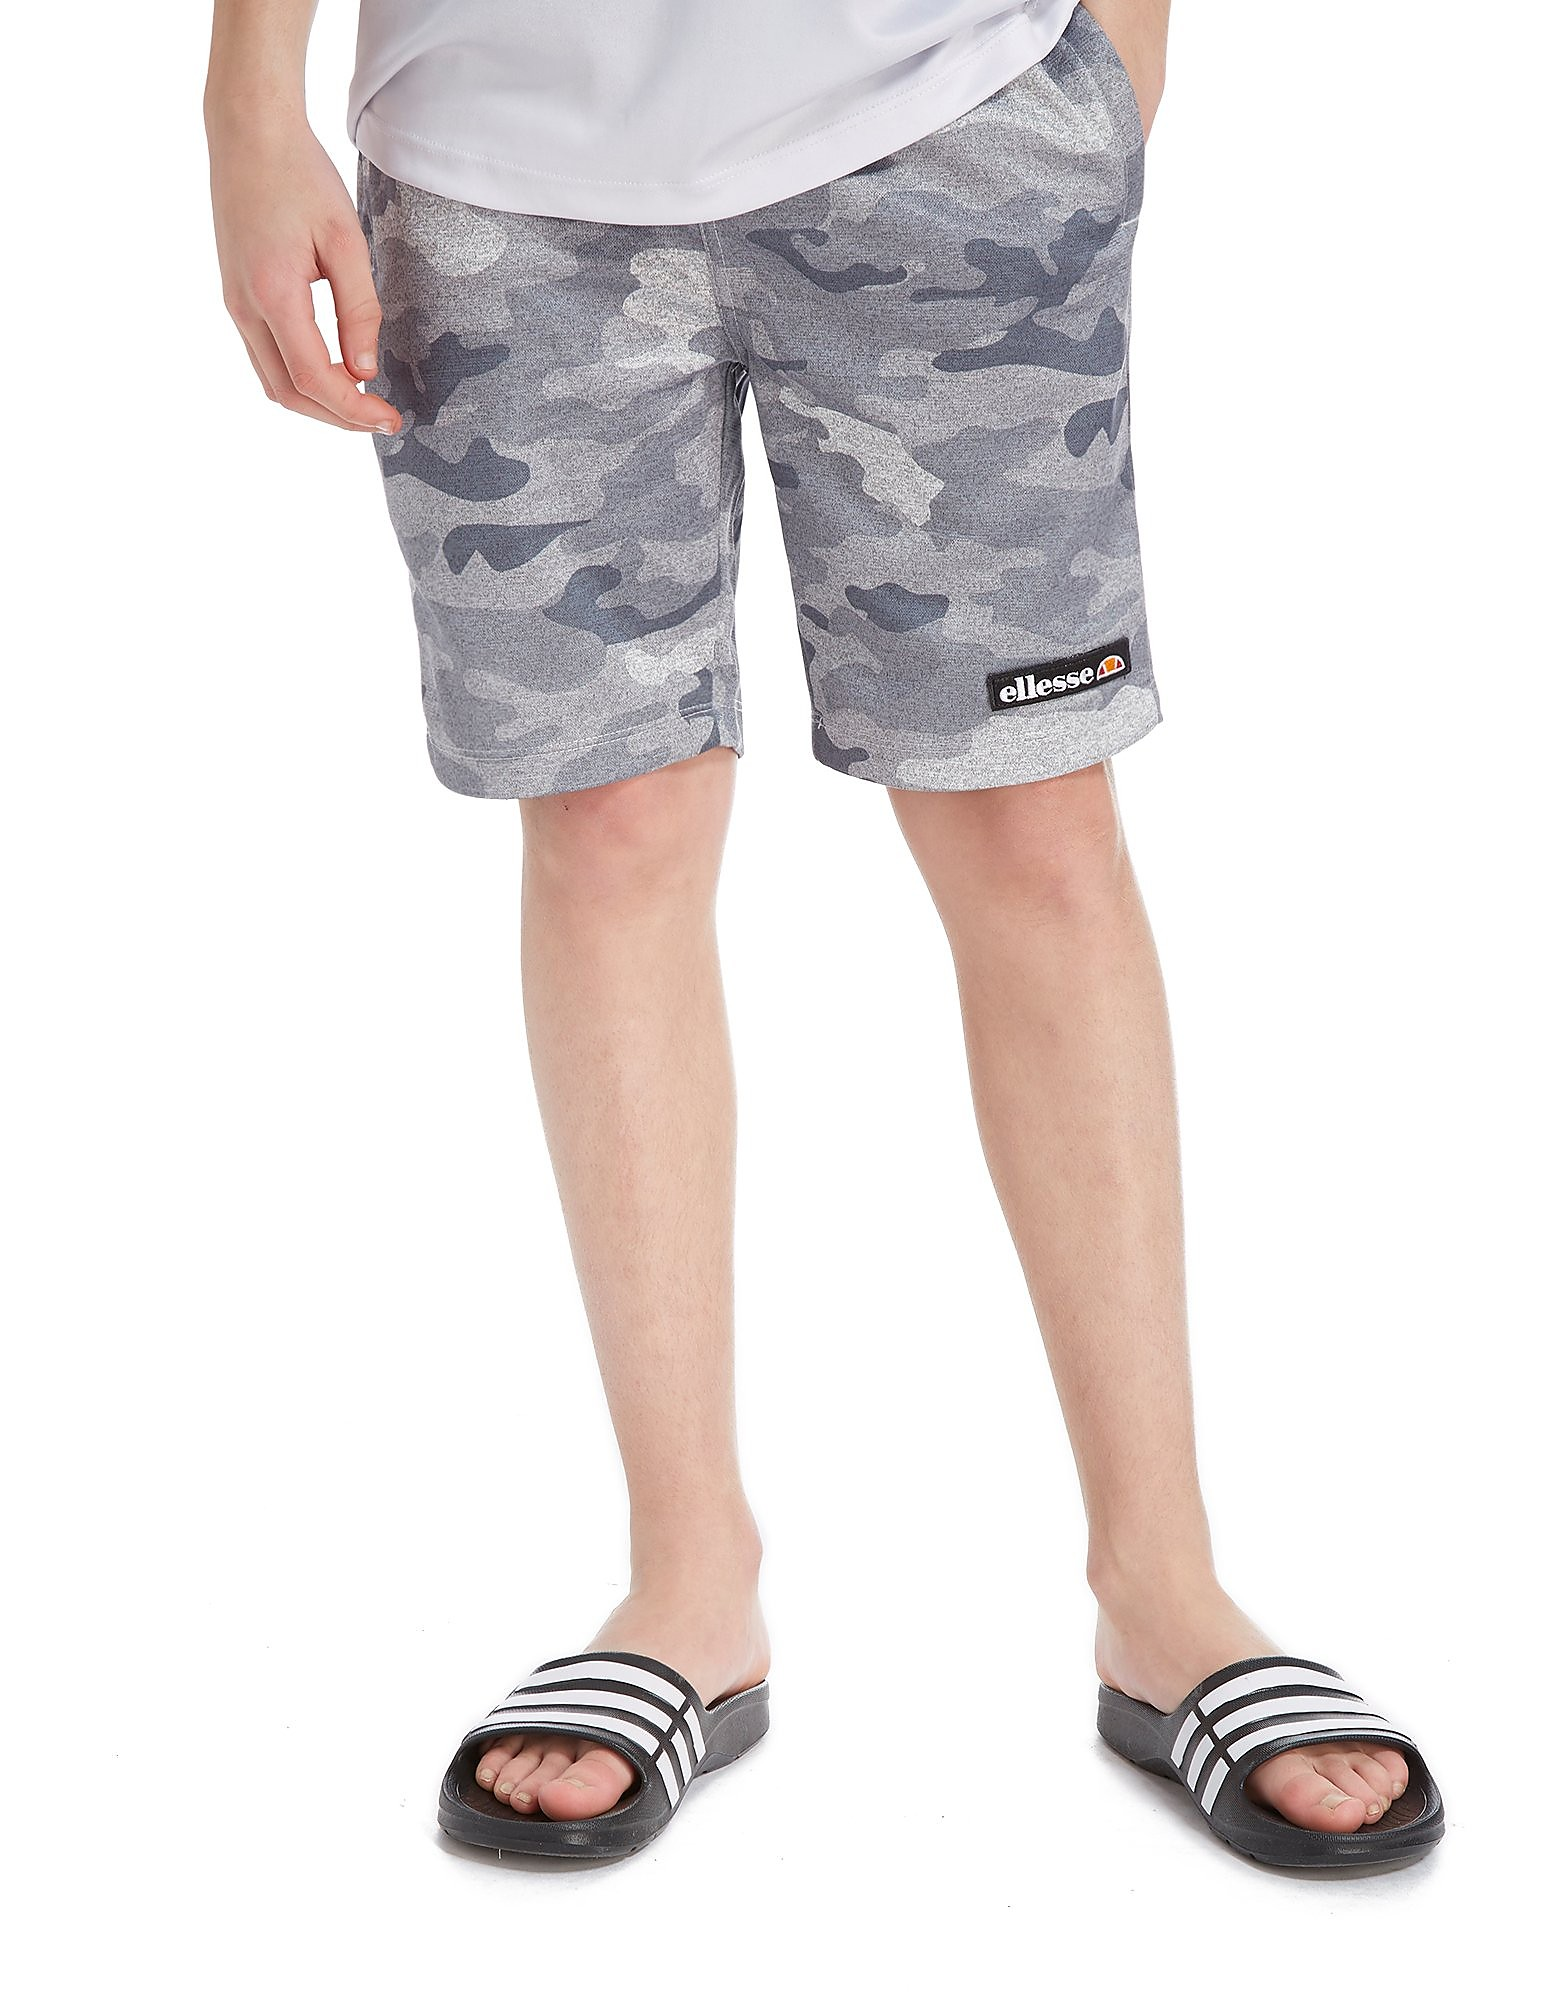 Ellesse Vianni Camo Fleece Shorts Junior